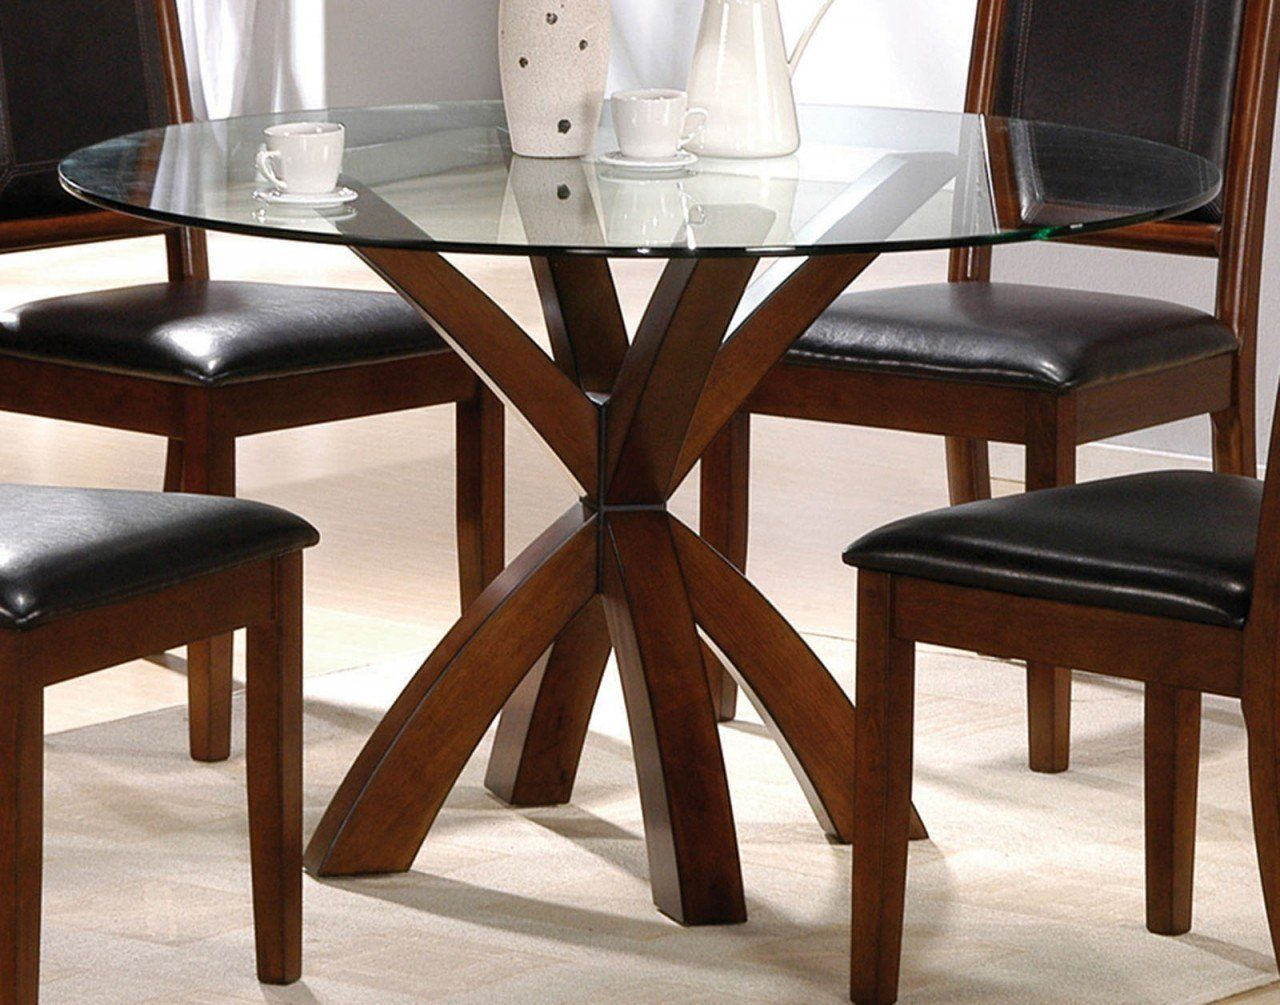 Dining Room Simple Round Glass Top Tables With Wood Base And Table Sets Modern Tops Home